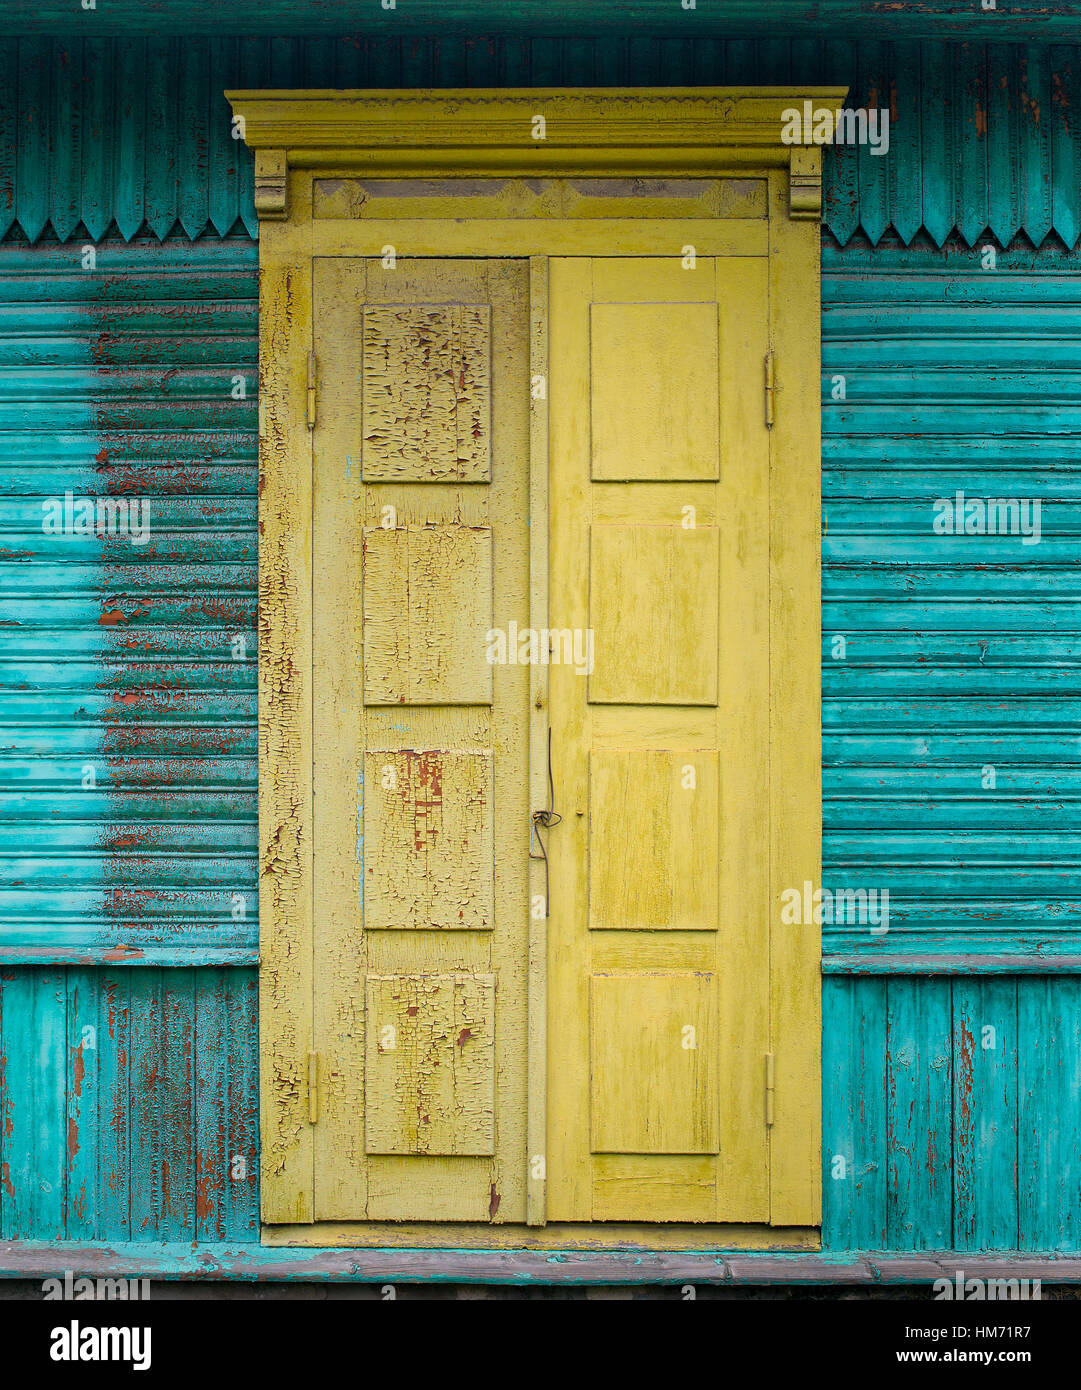 Yellow entrance door of the old wooden house which walls are painted ...